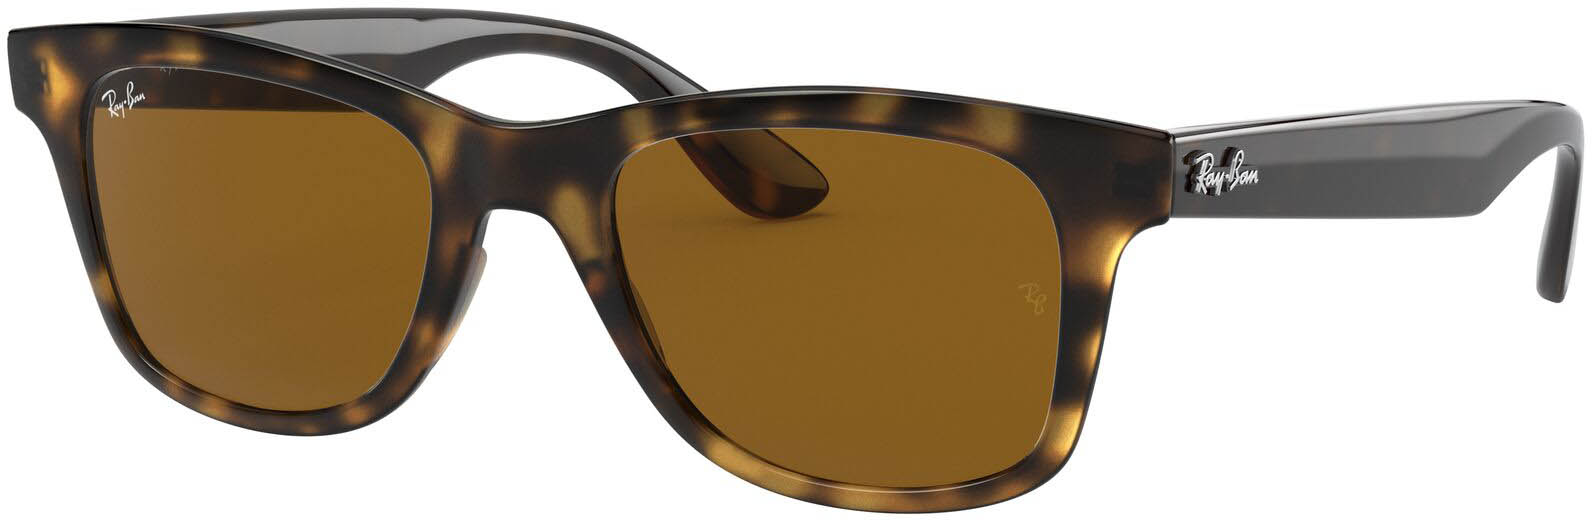 Ray-Ban RB 4640 HAVANA/BROWN 50/20/150 Unisex Zonnebrillen